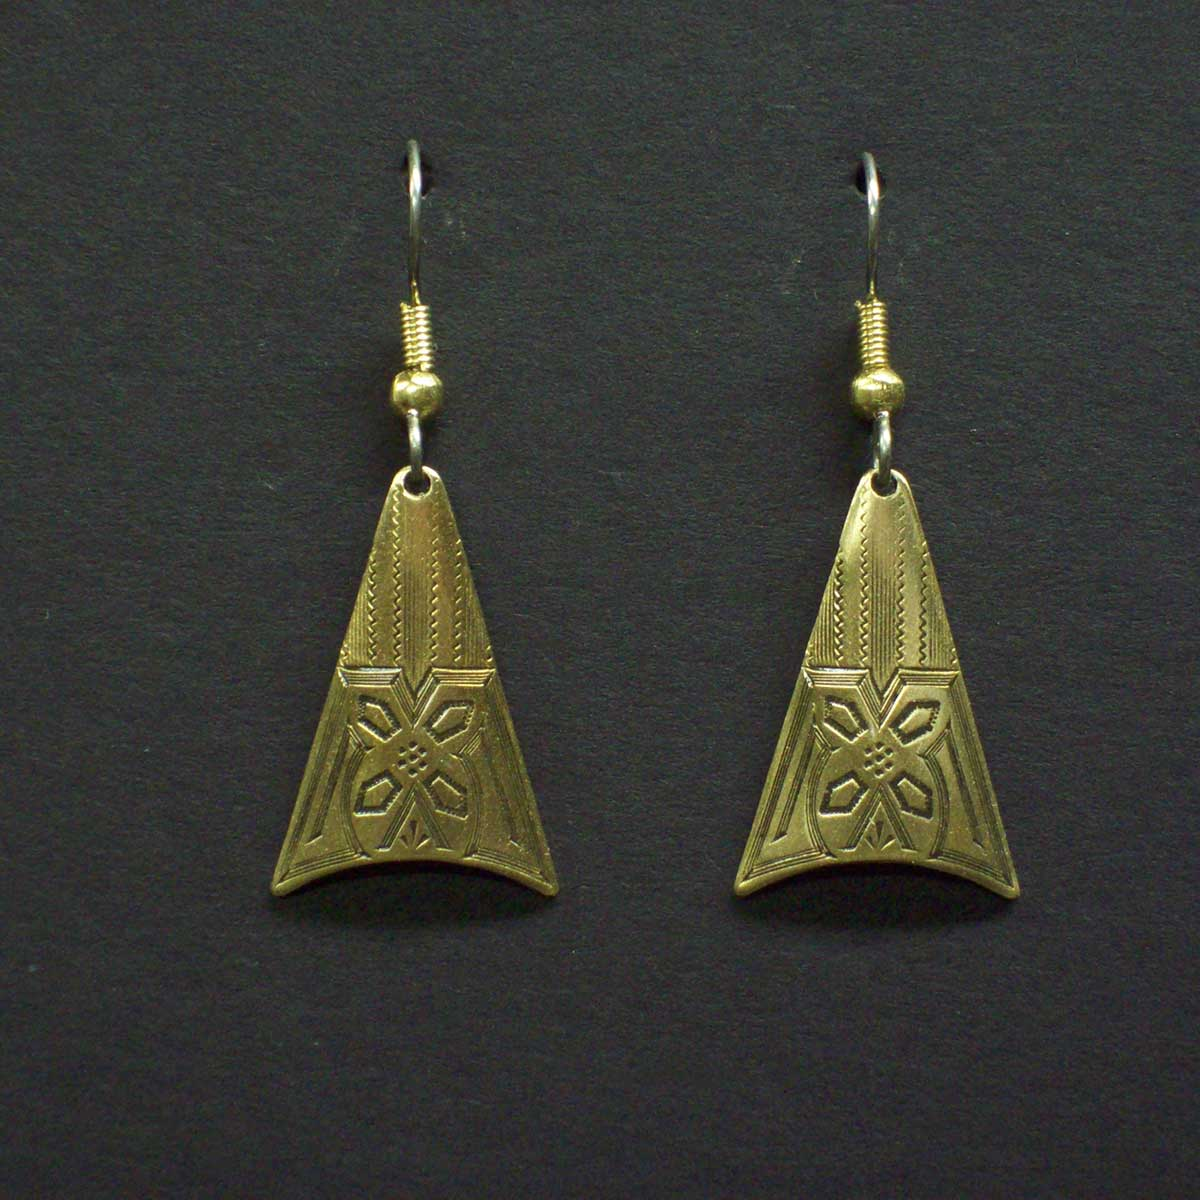 Engraved Vintage Style Earrings